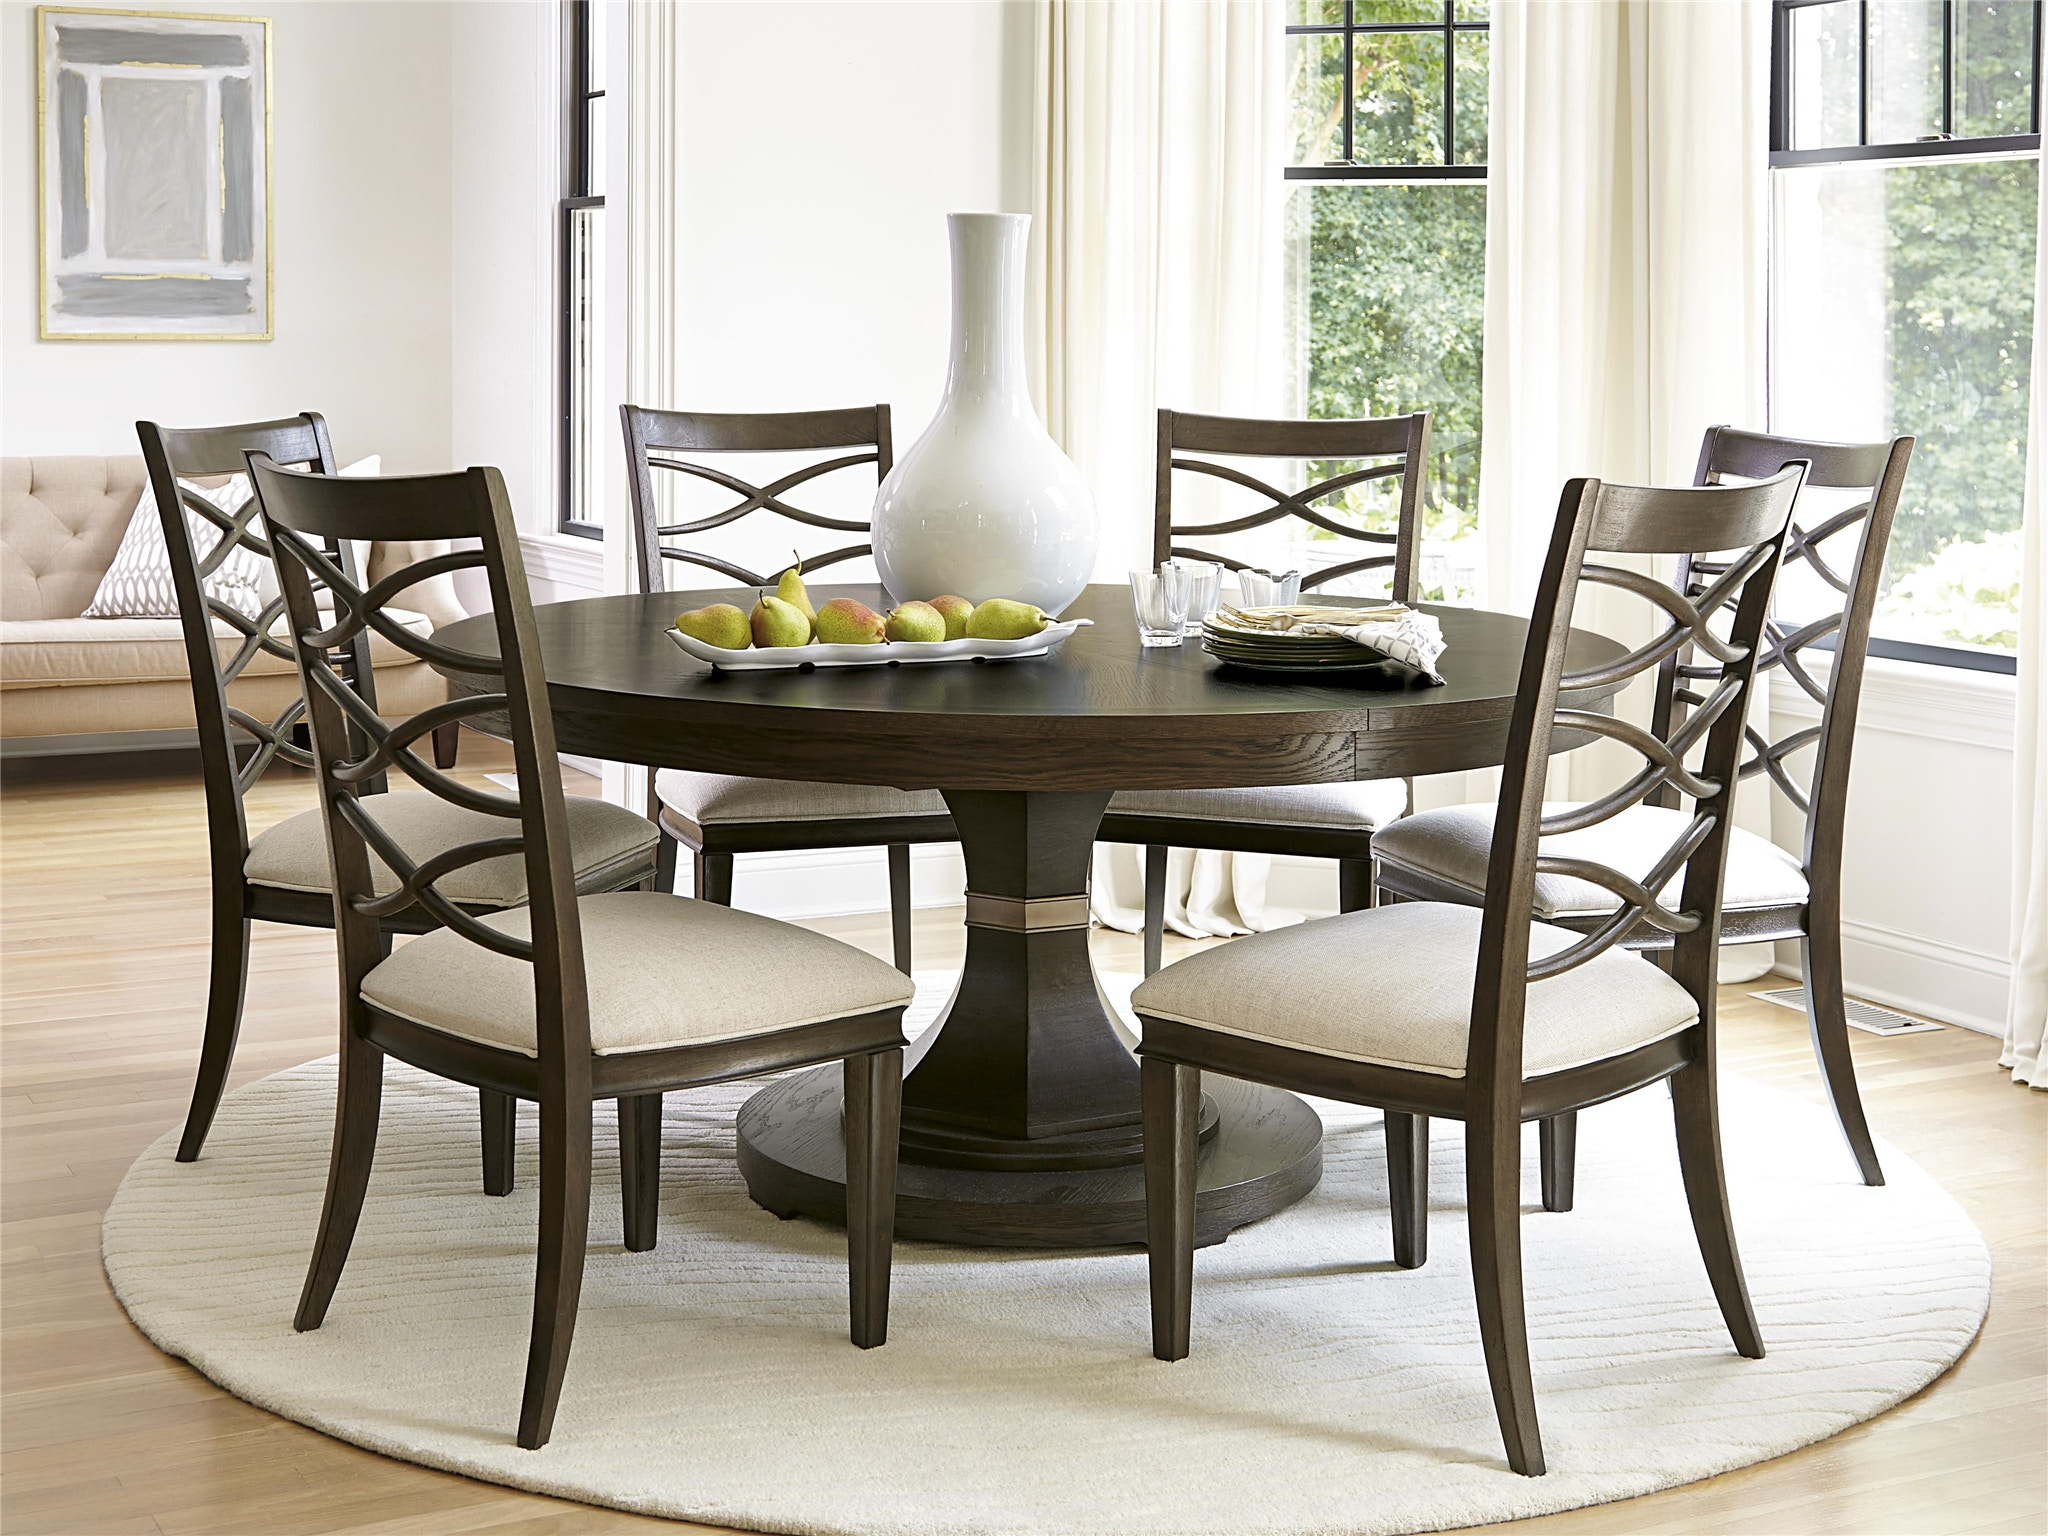 Universal Furniture Dining Room Complete Round Dining  : 475drrs09657634 from www.finessehomeliving.com size 1024 x 768 jpeg 111kB